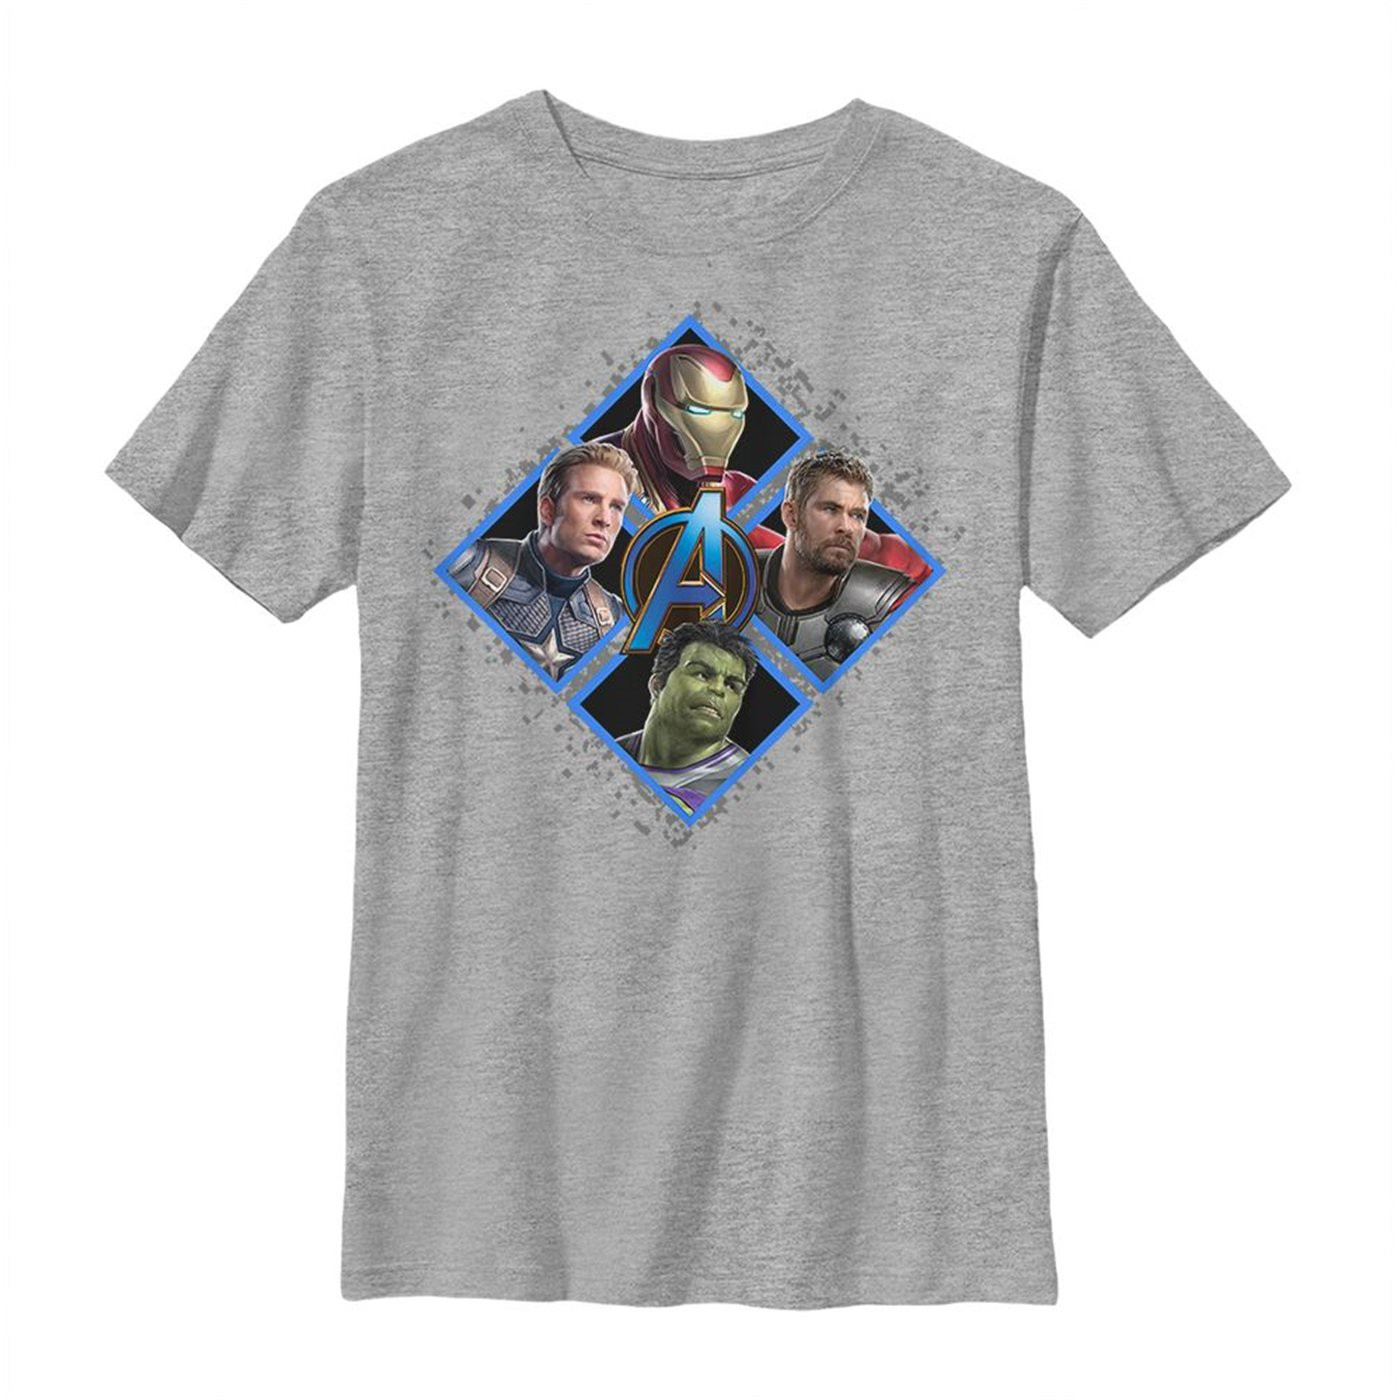 Avengers Endgame Square Box Group Shot Youth T-Shirt